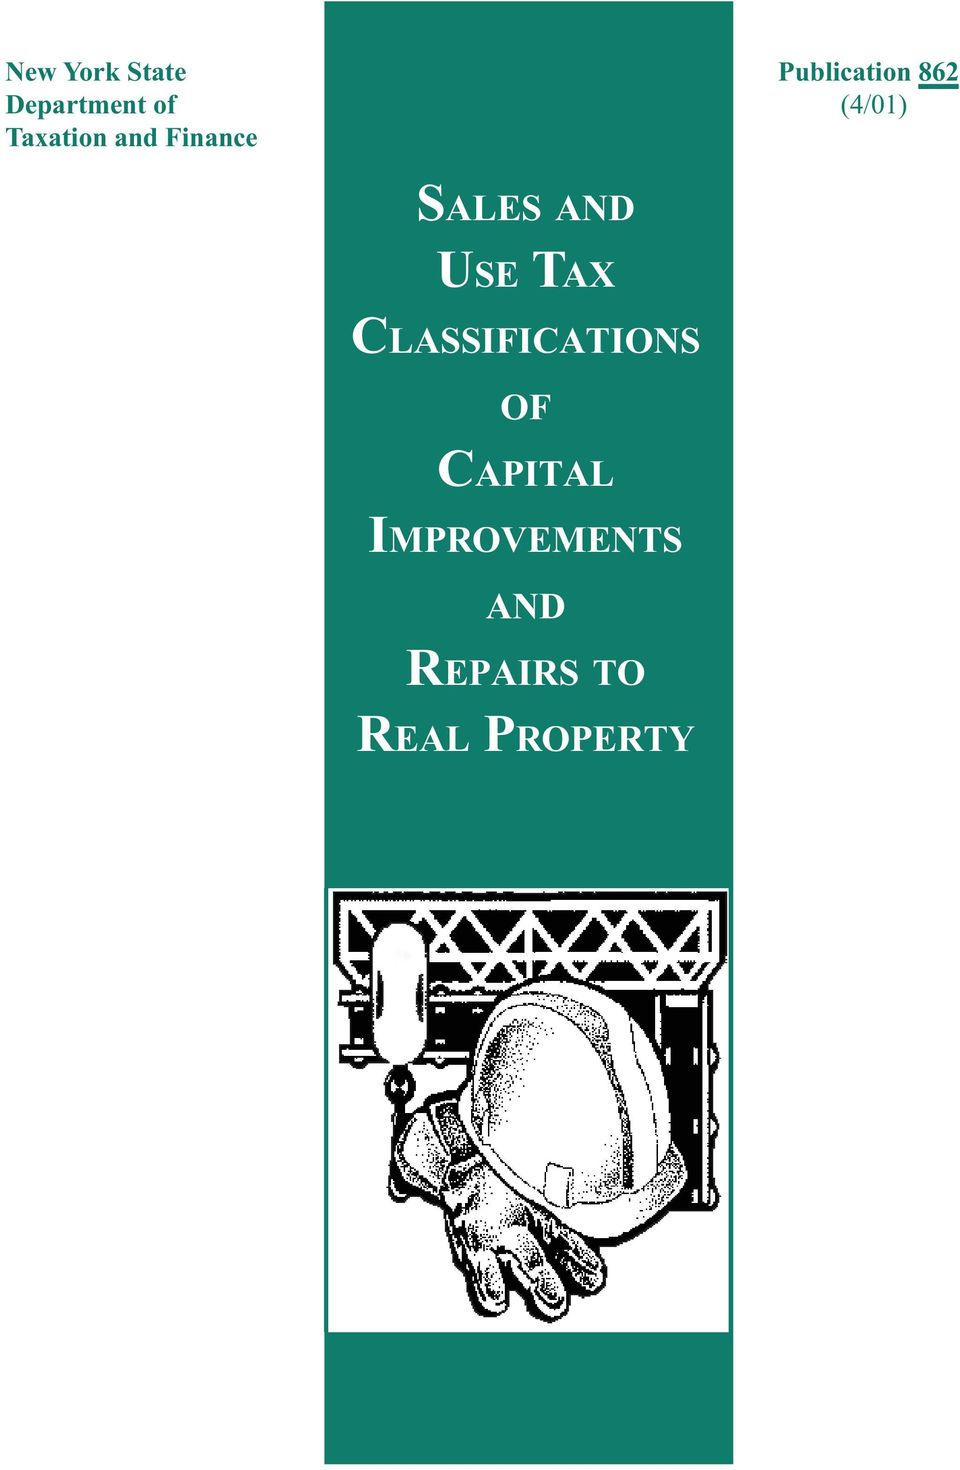 SALES AND USE TAX CLASSIFICATIONS OF